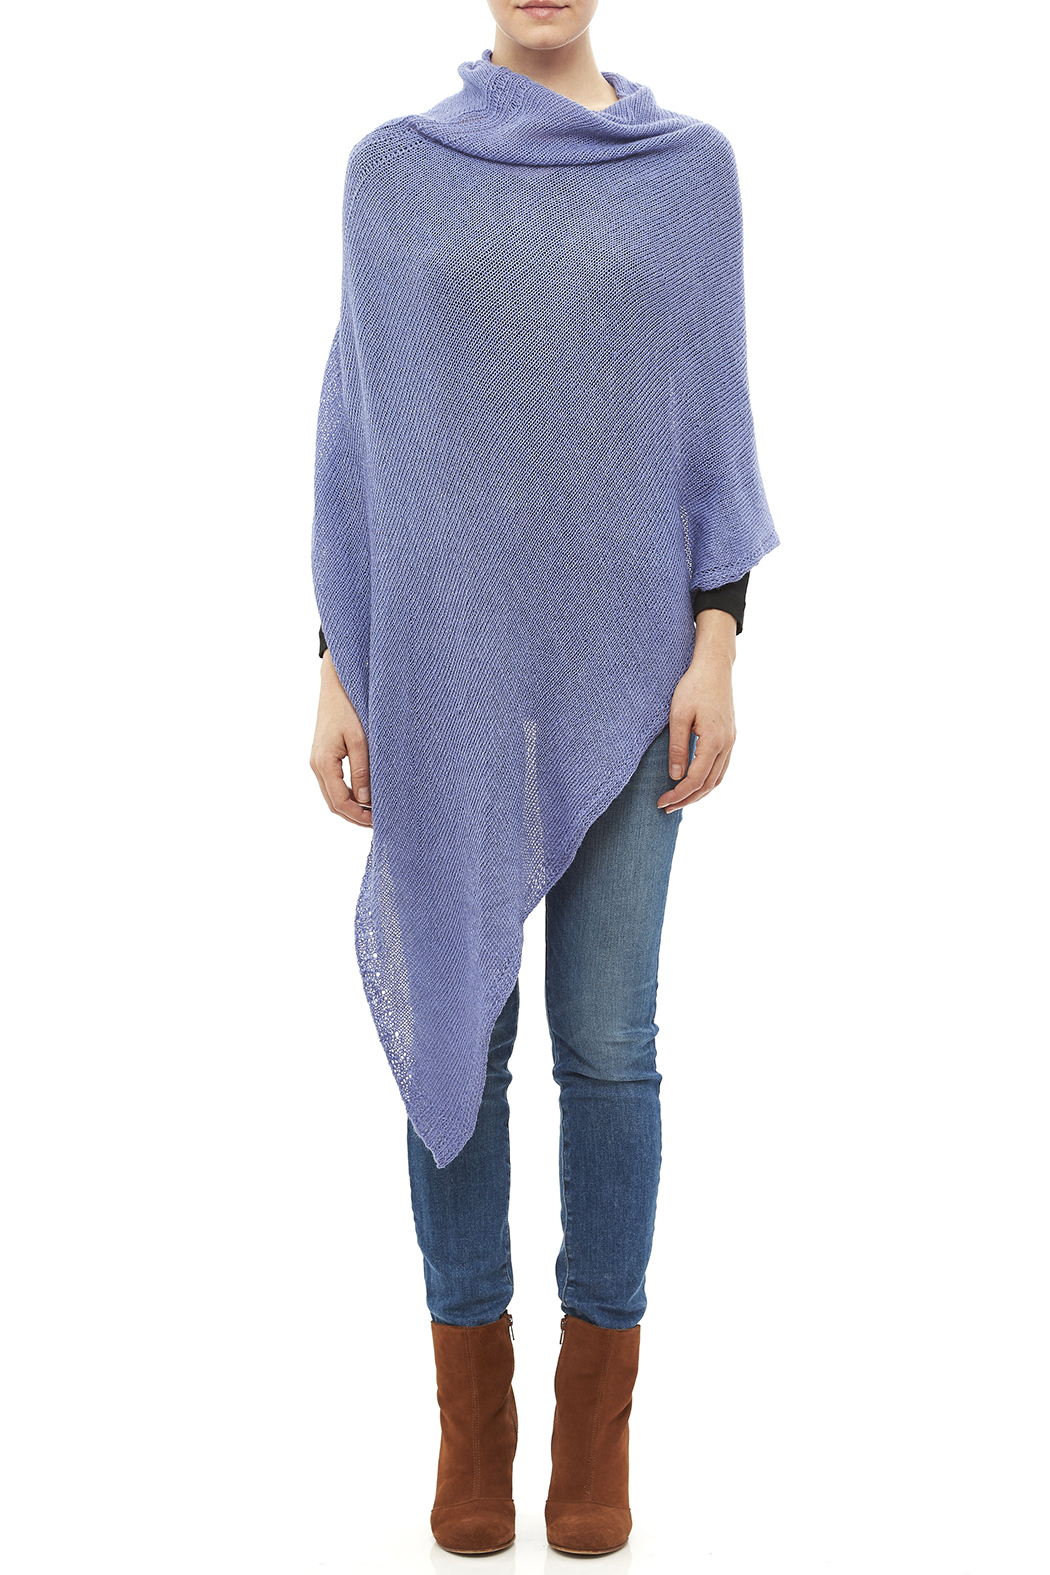 DC KNITS Periwinkle Chameleon Wrap - Front Full Image